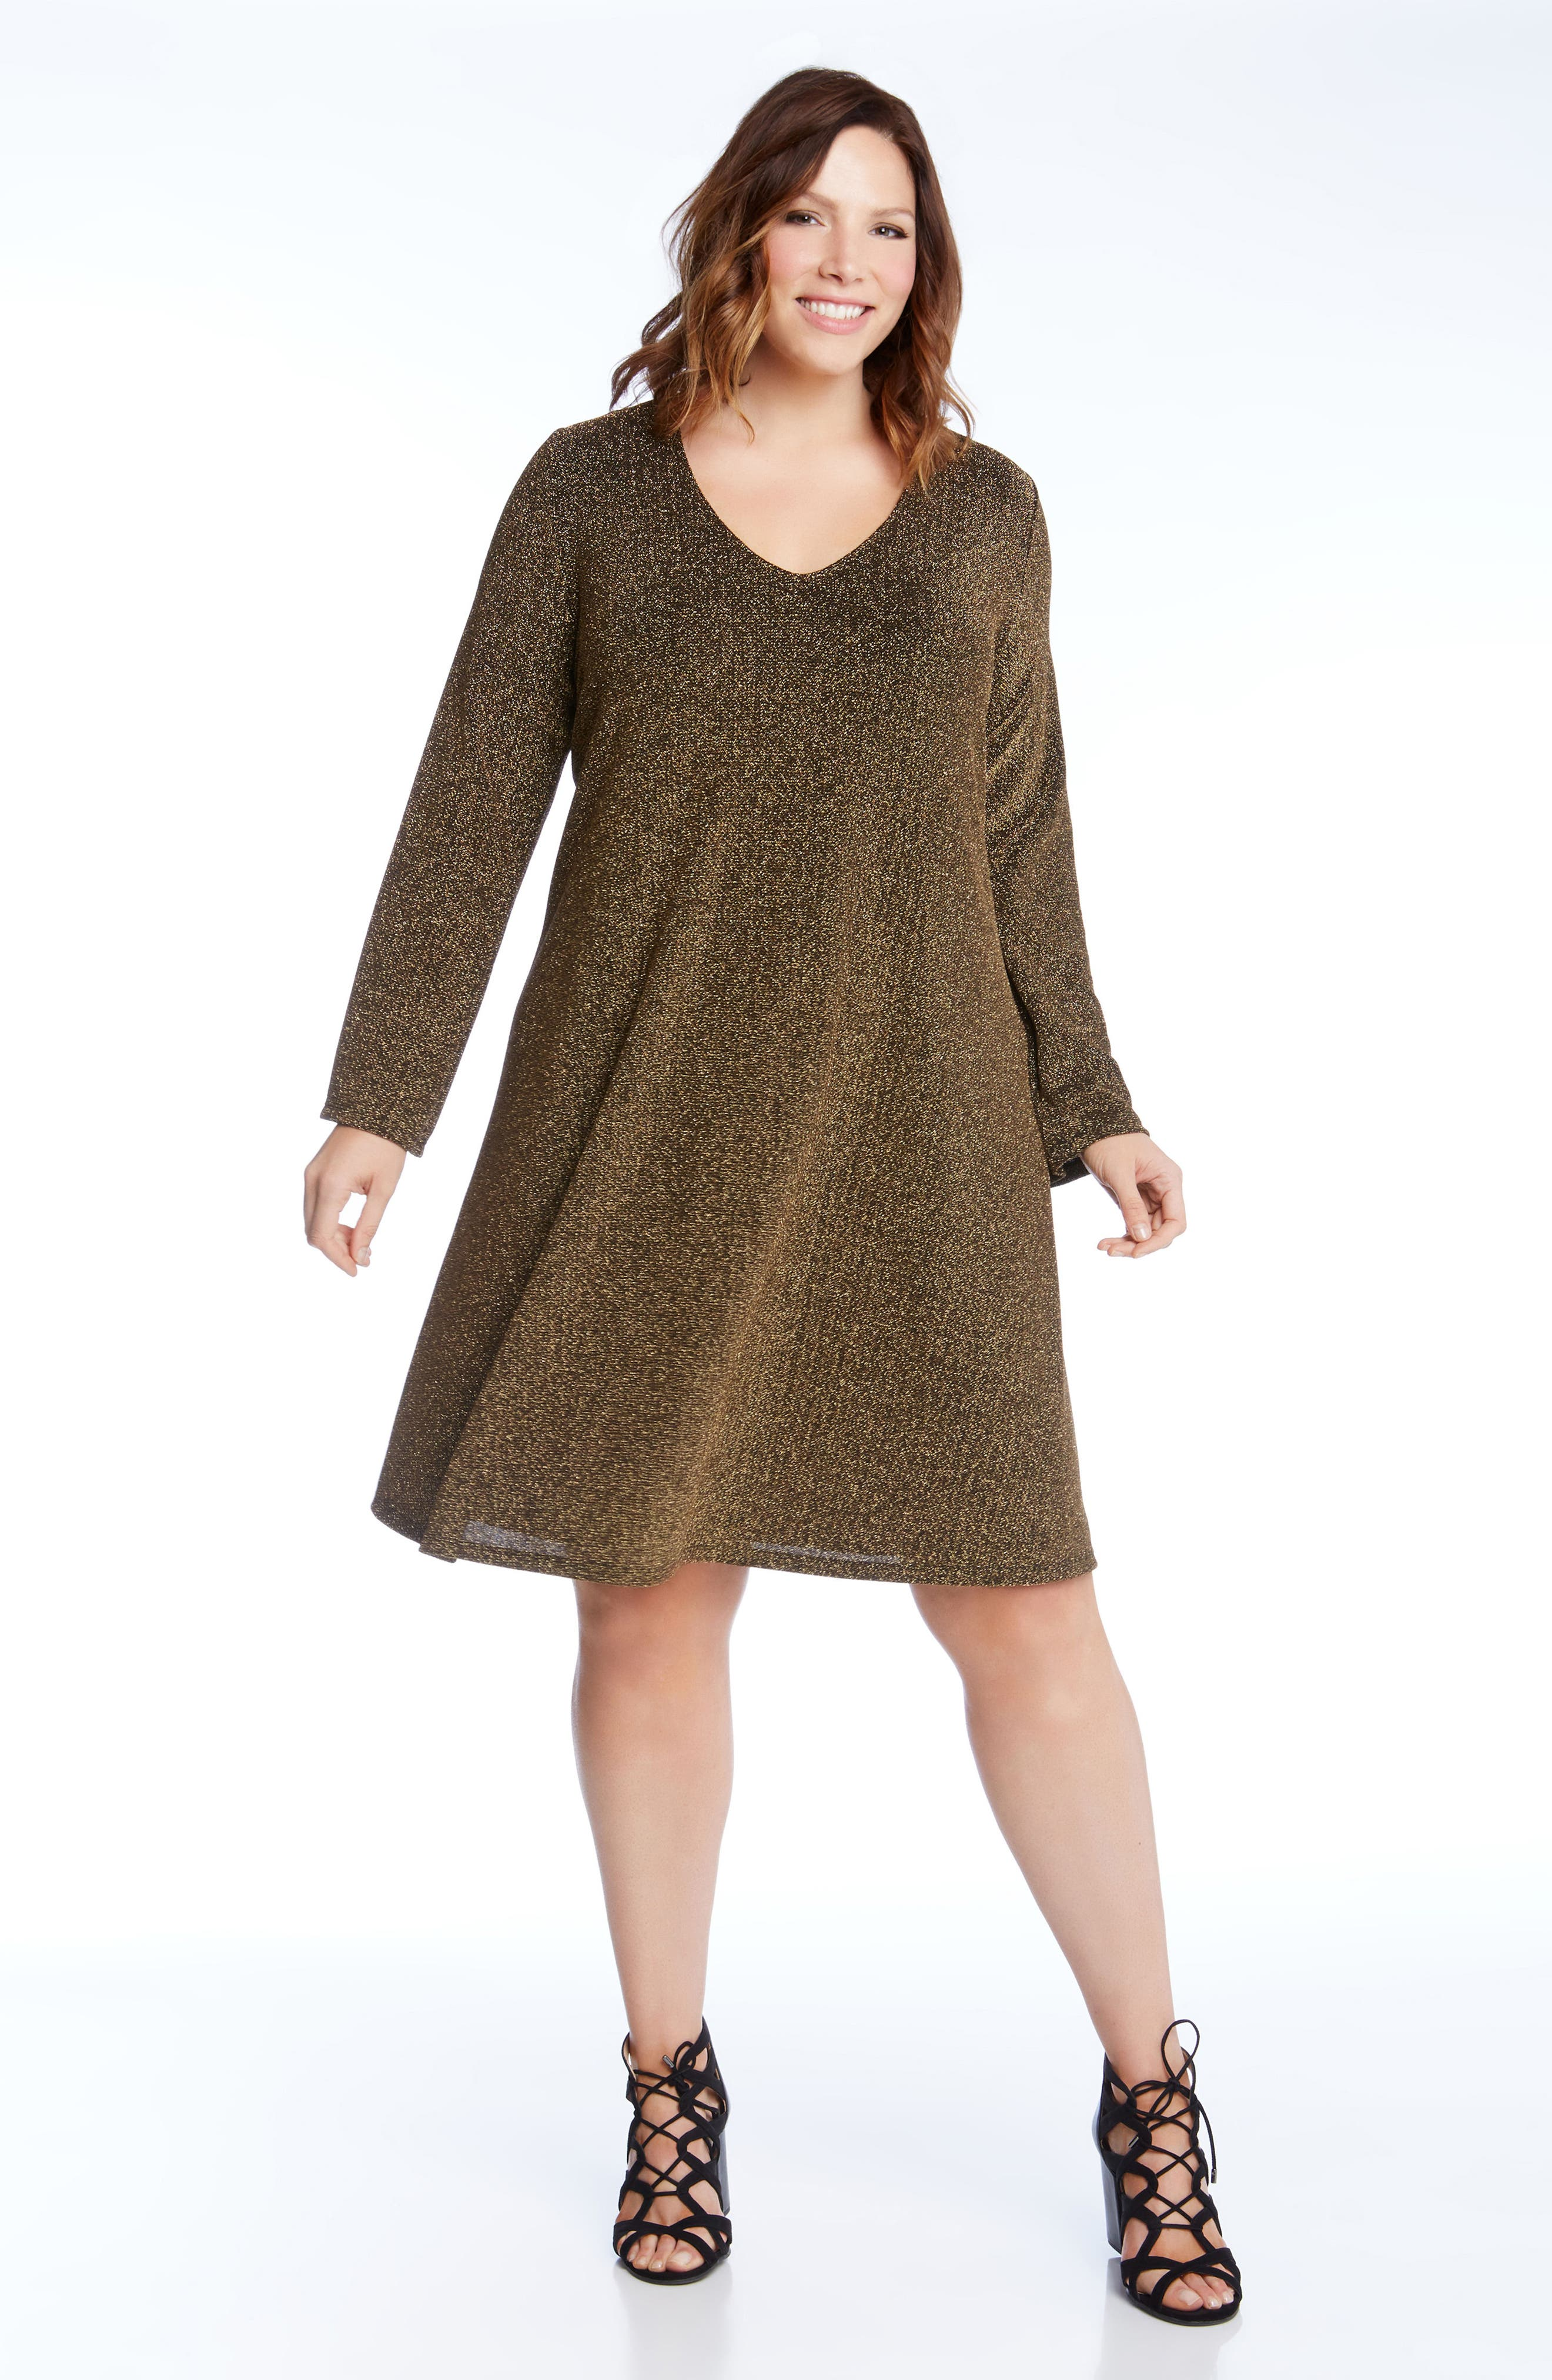 Taylor Gold Knit Dress,                             Alternate thumbnail 3, color,                             710